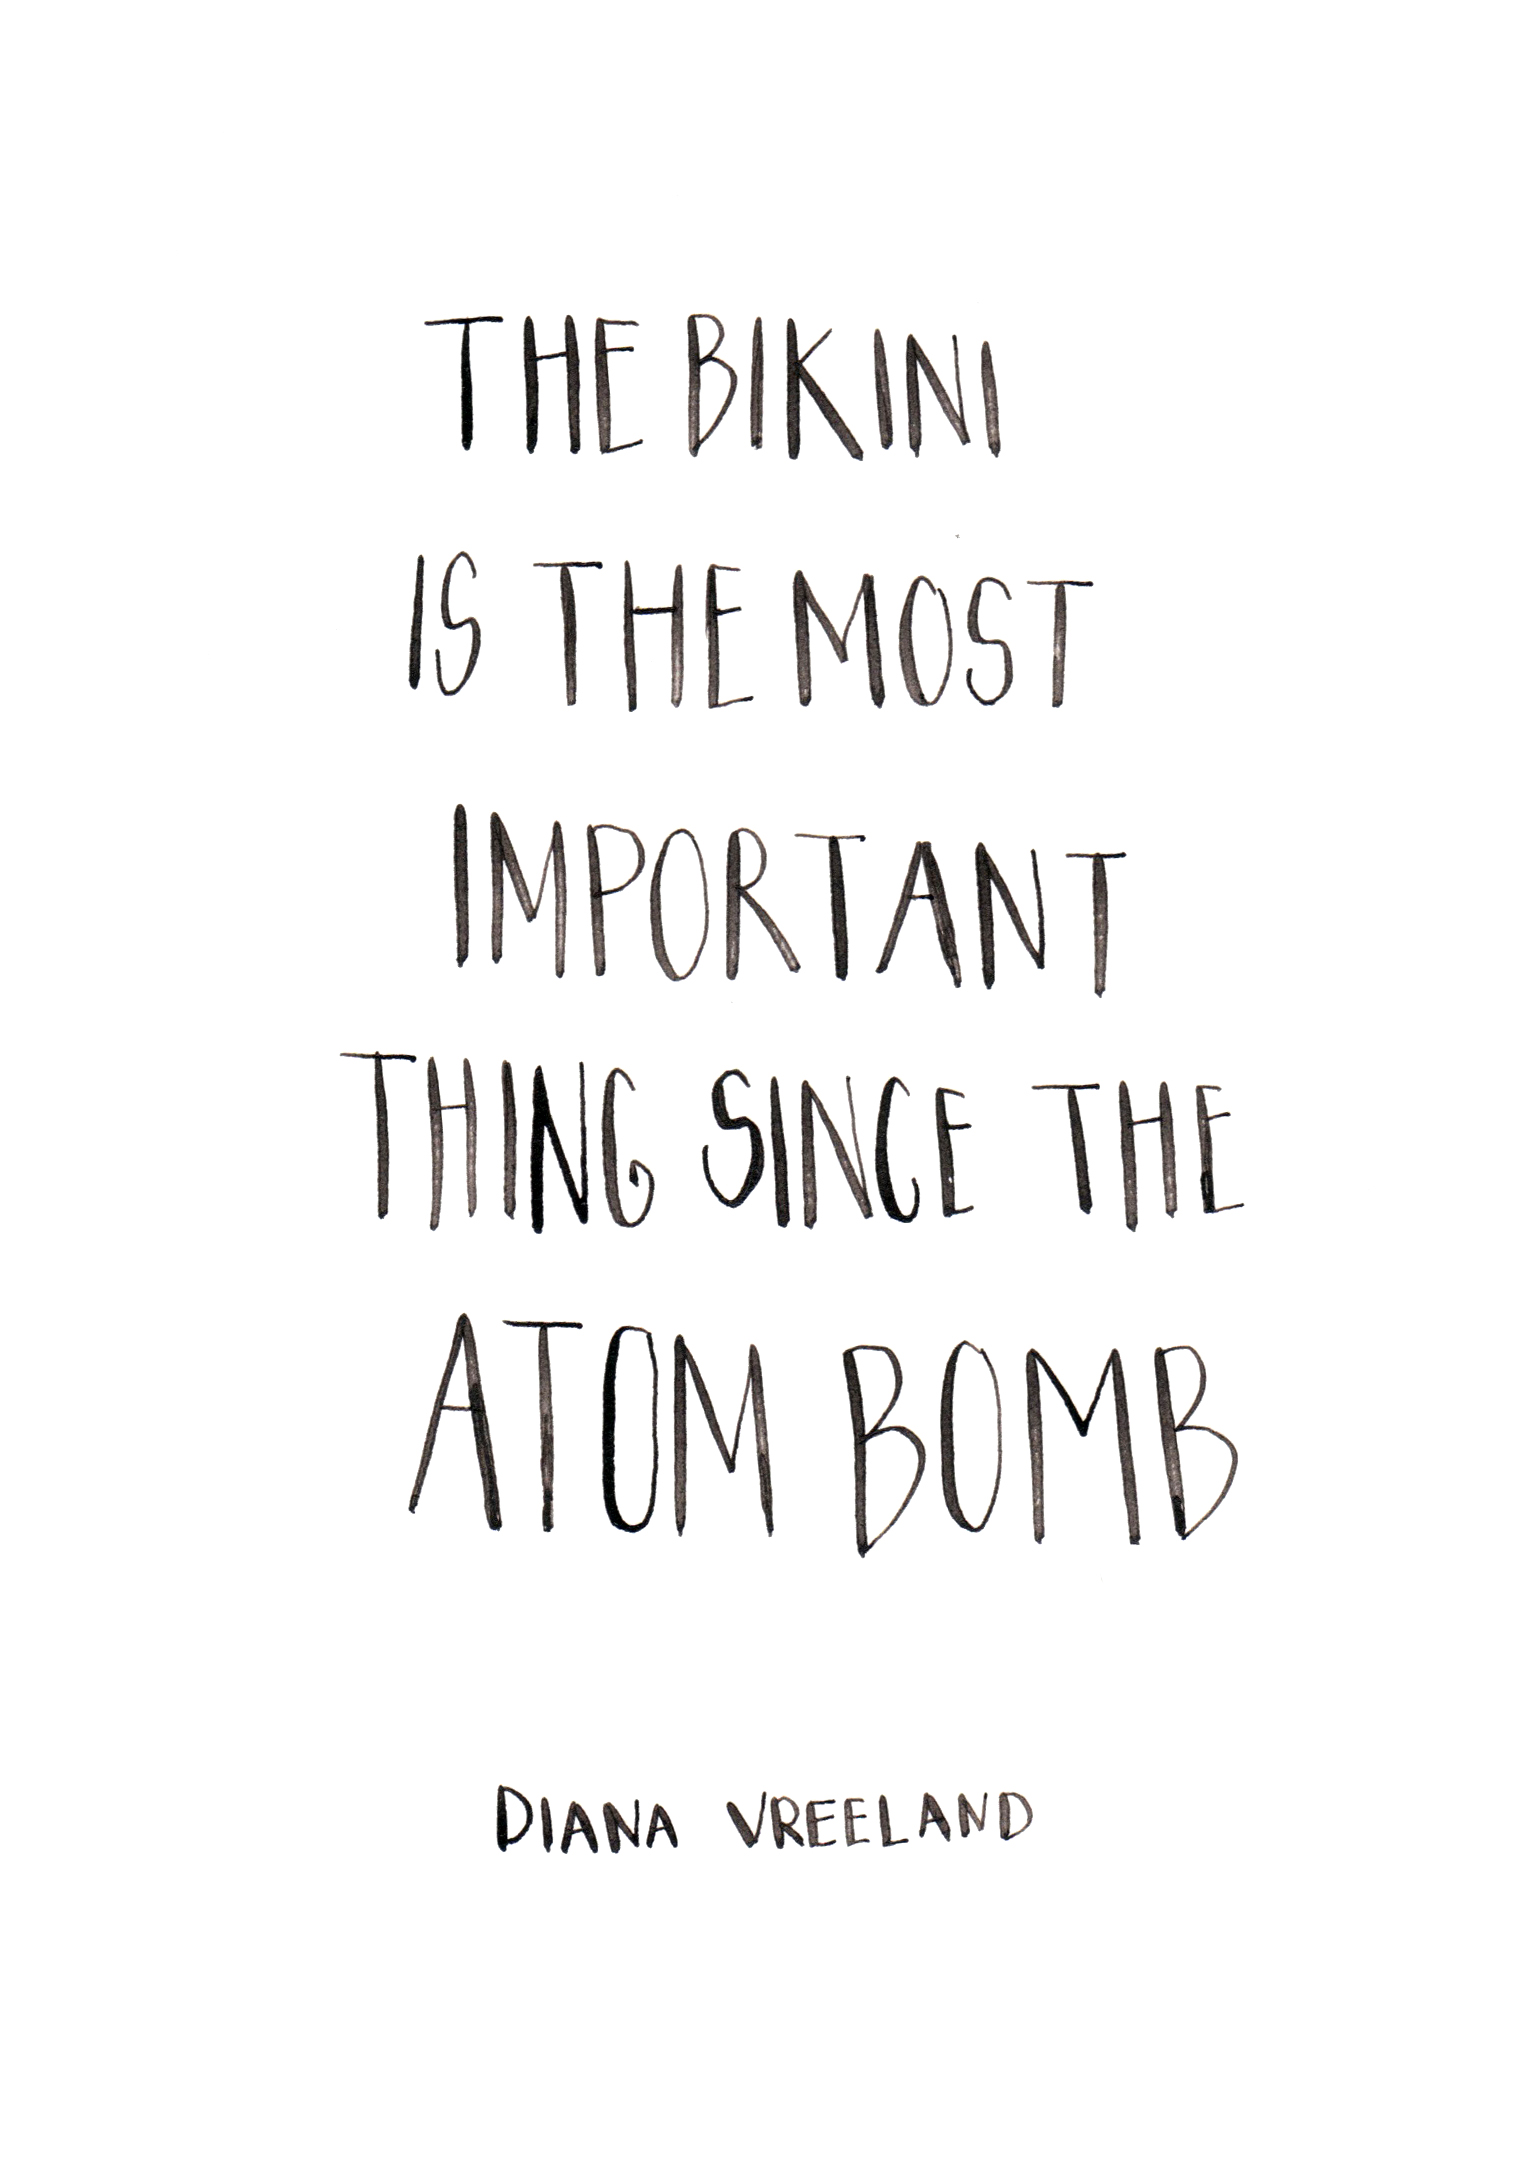 The bikini is the most important thing since the atom bomb. Diana Vreeland. Custom Type by Alicia Carvalho | www.alicia-carvalho.com